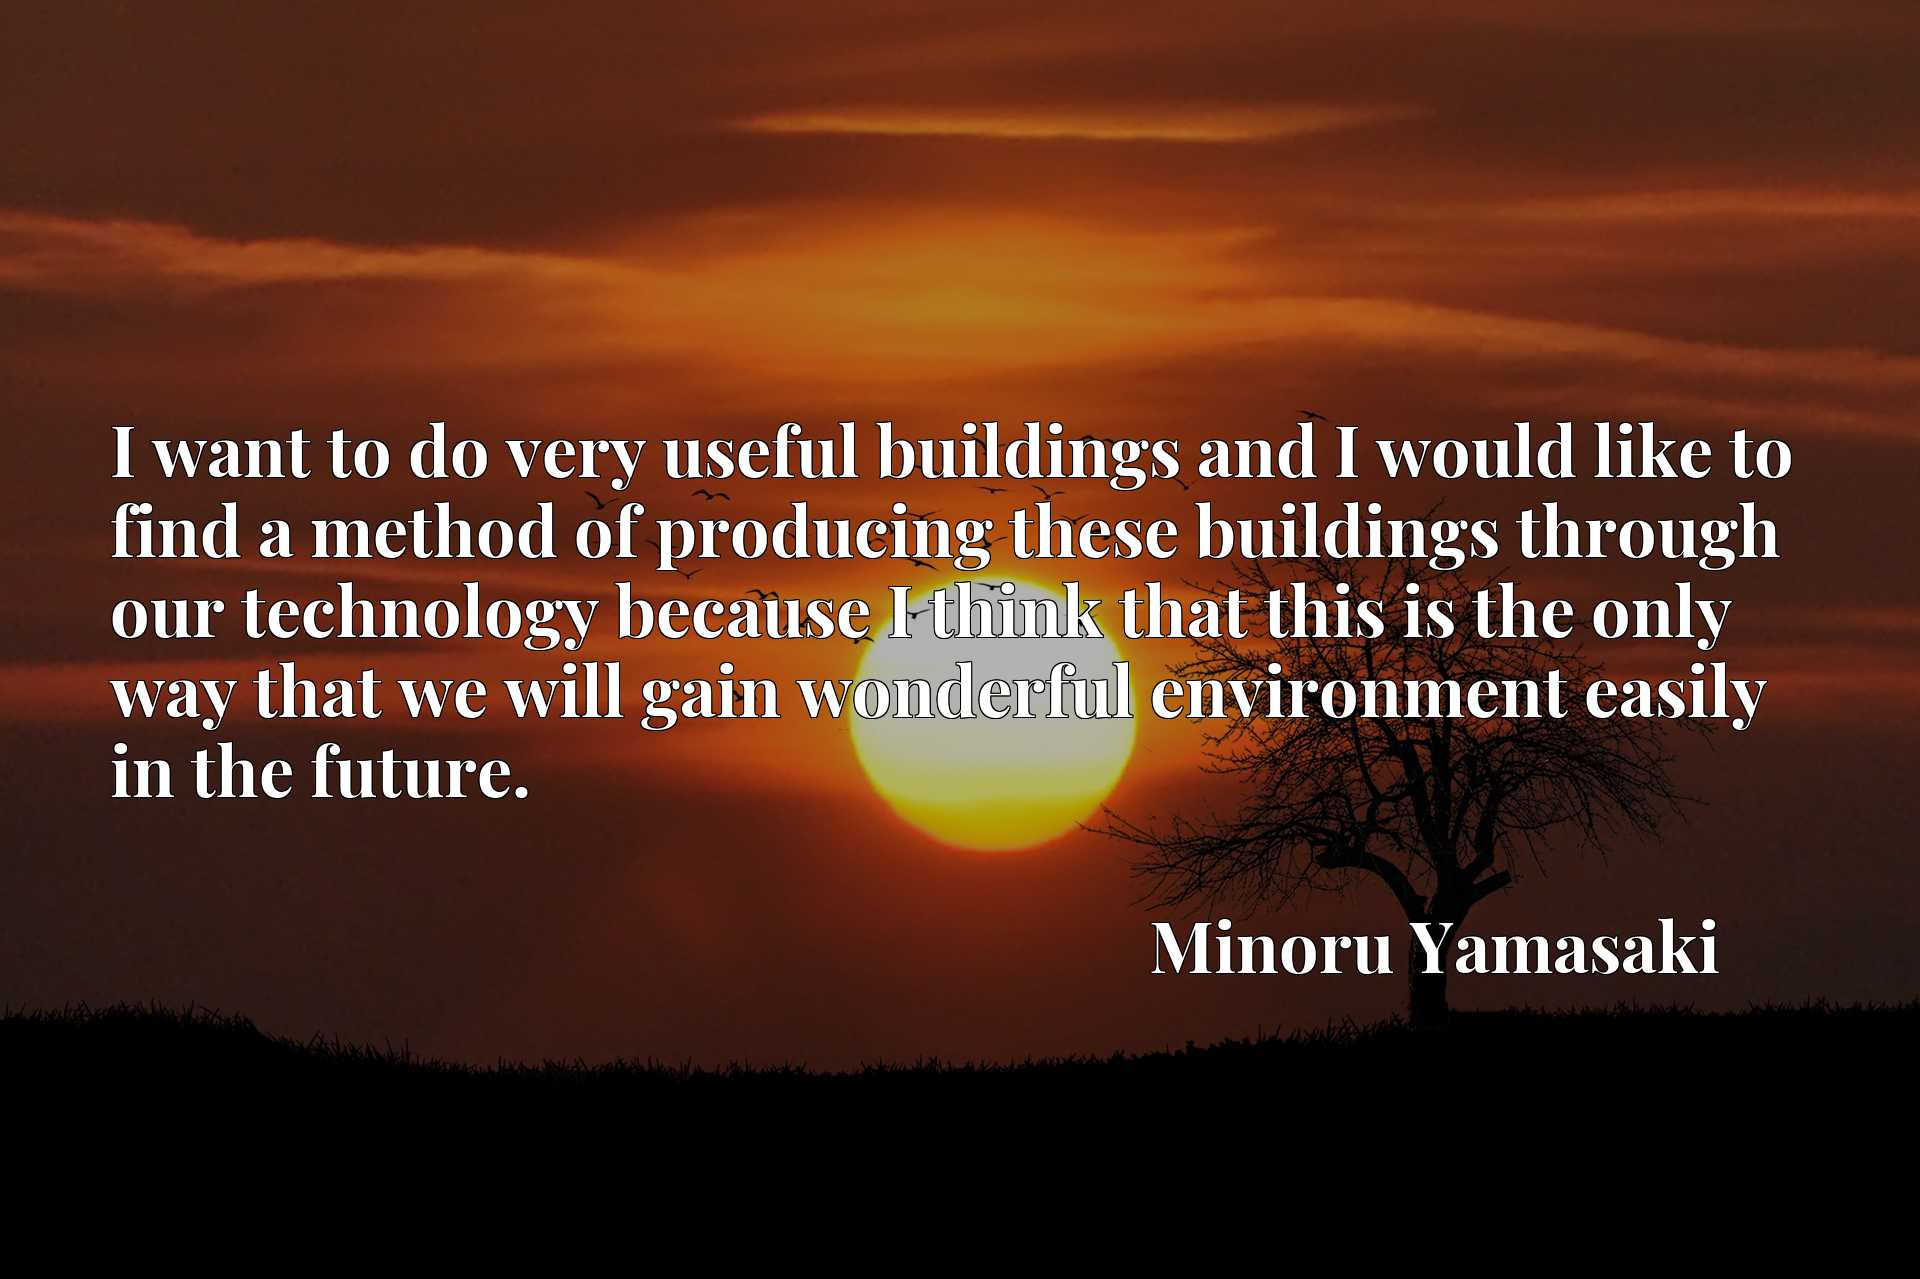 I want to do very useful buildings and I would like to find a method of producing these buildings through our technology because I think that this is the only way that we will gain wonderful environment easily in the future.